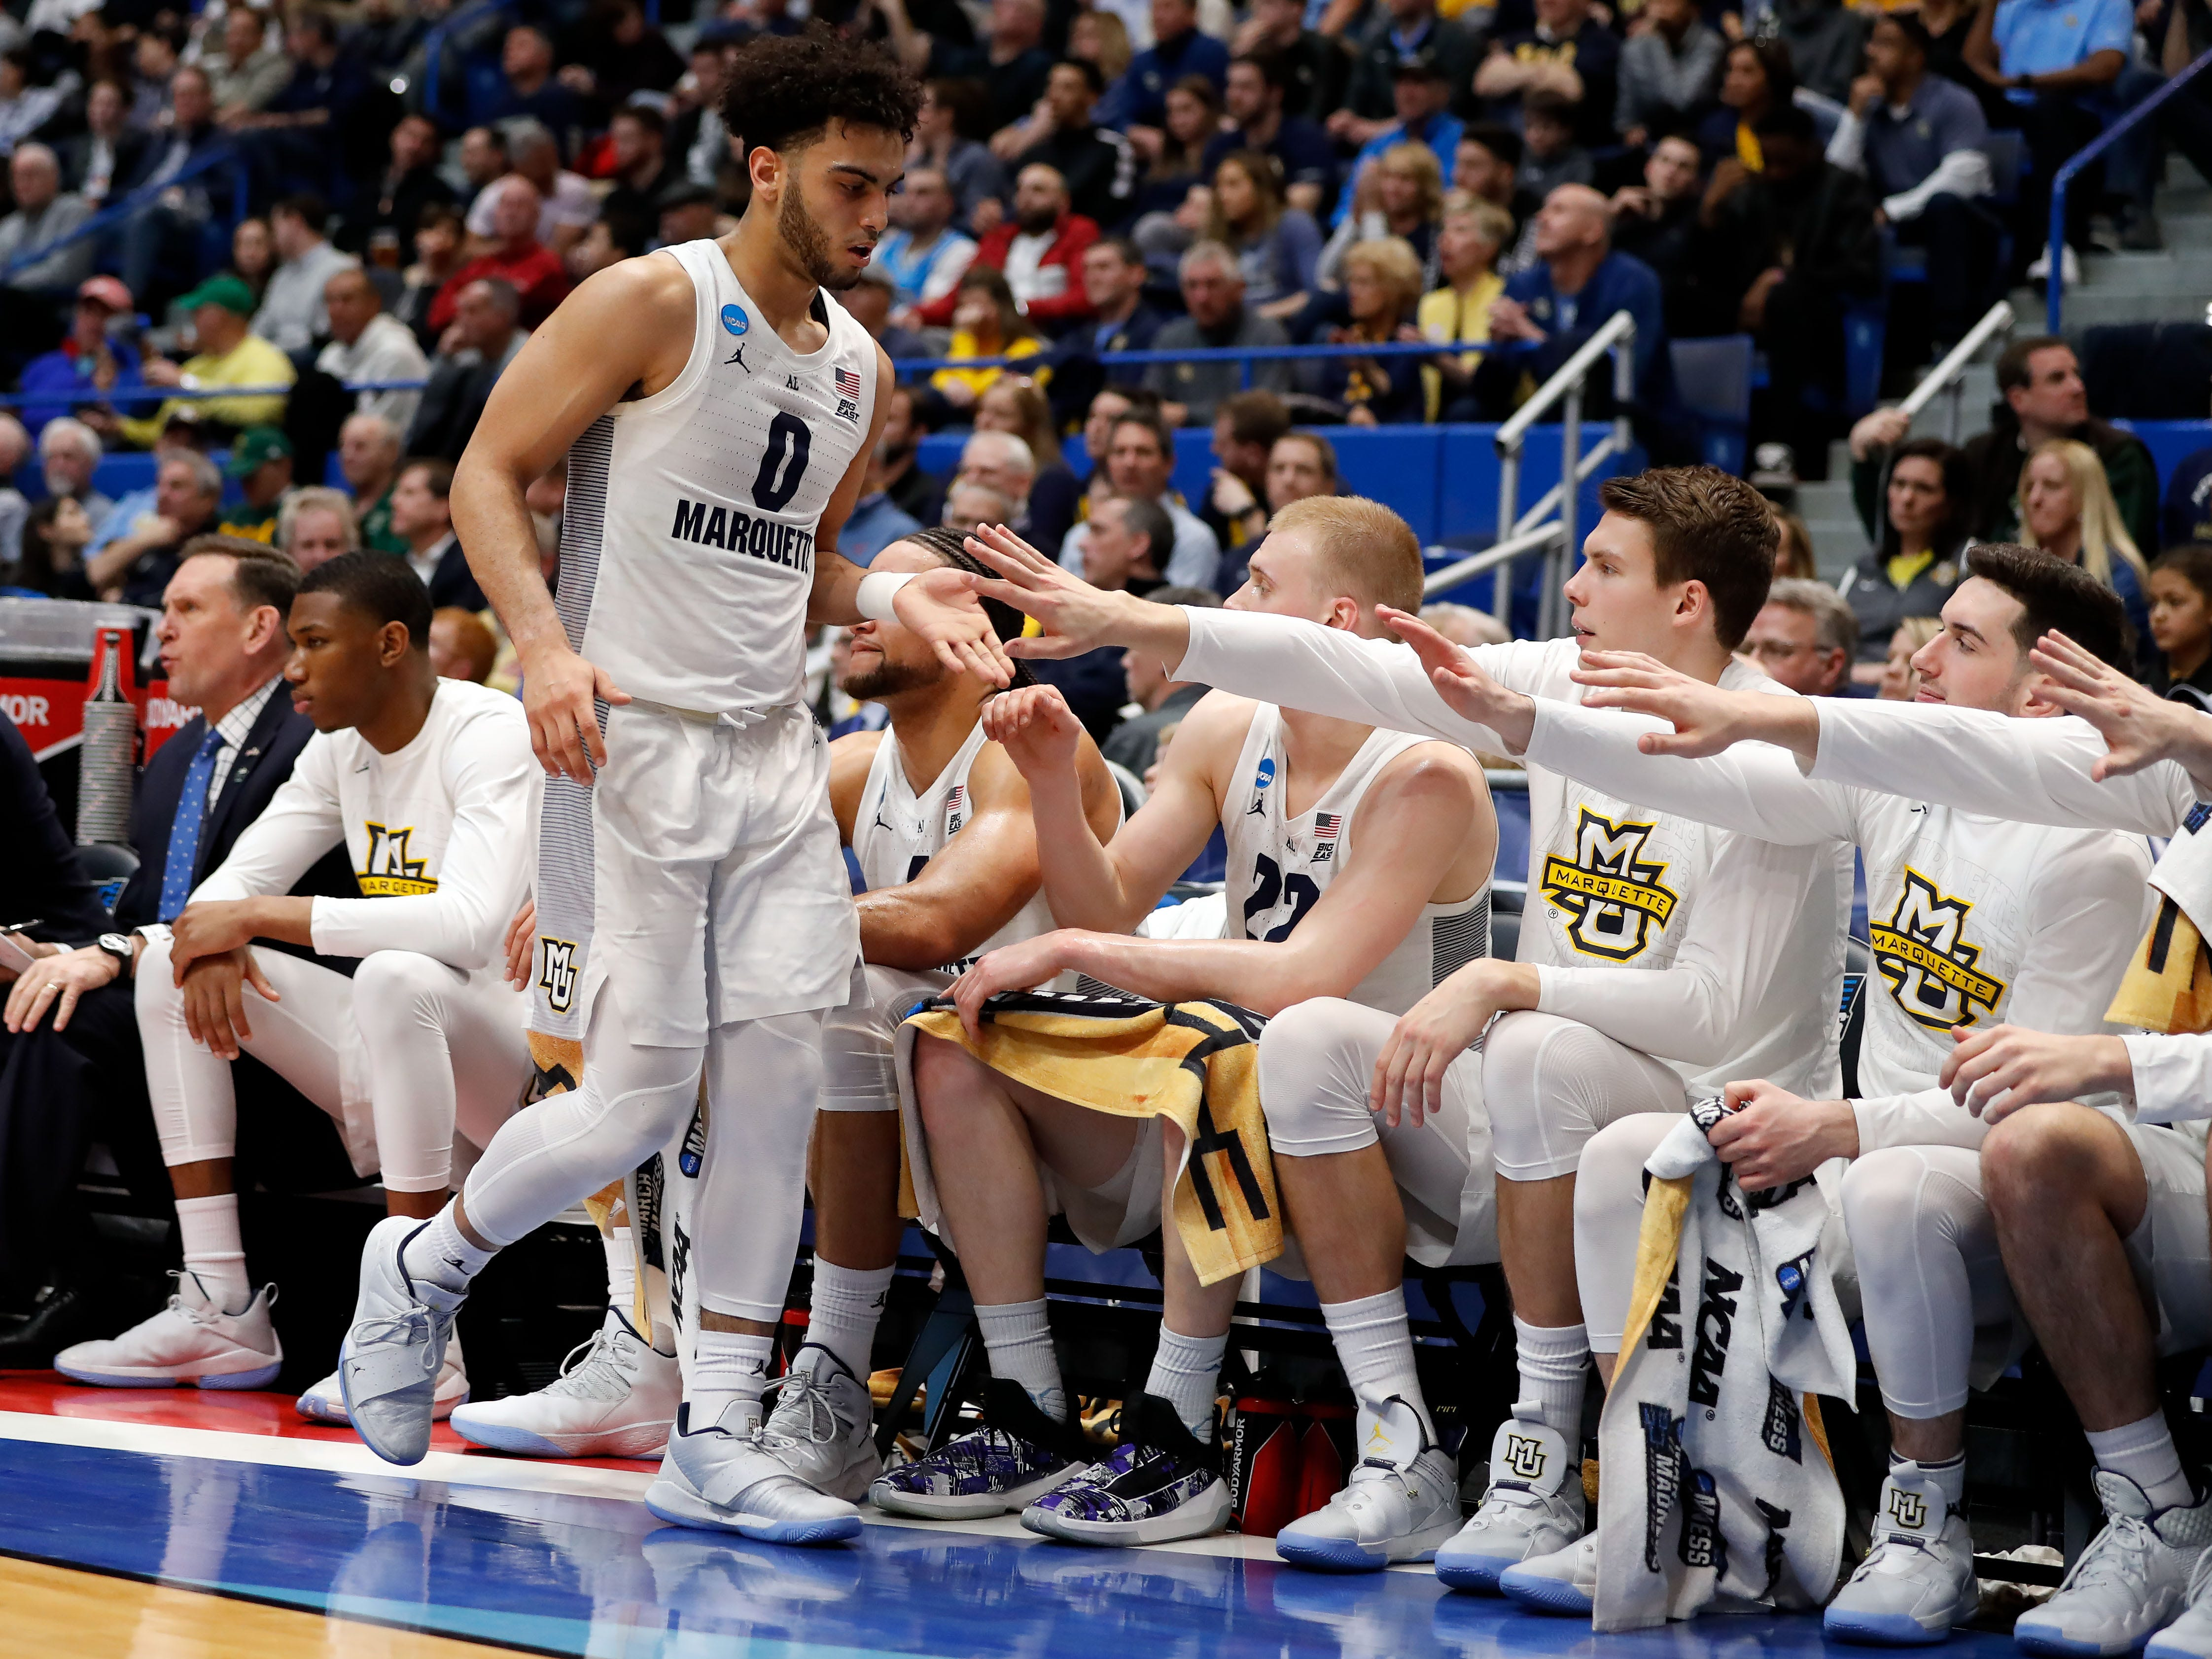 Golden Eagles guard Markus Howard high fives his teammates as he leaves the game against Murray State for a short break during the first half.